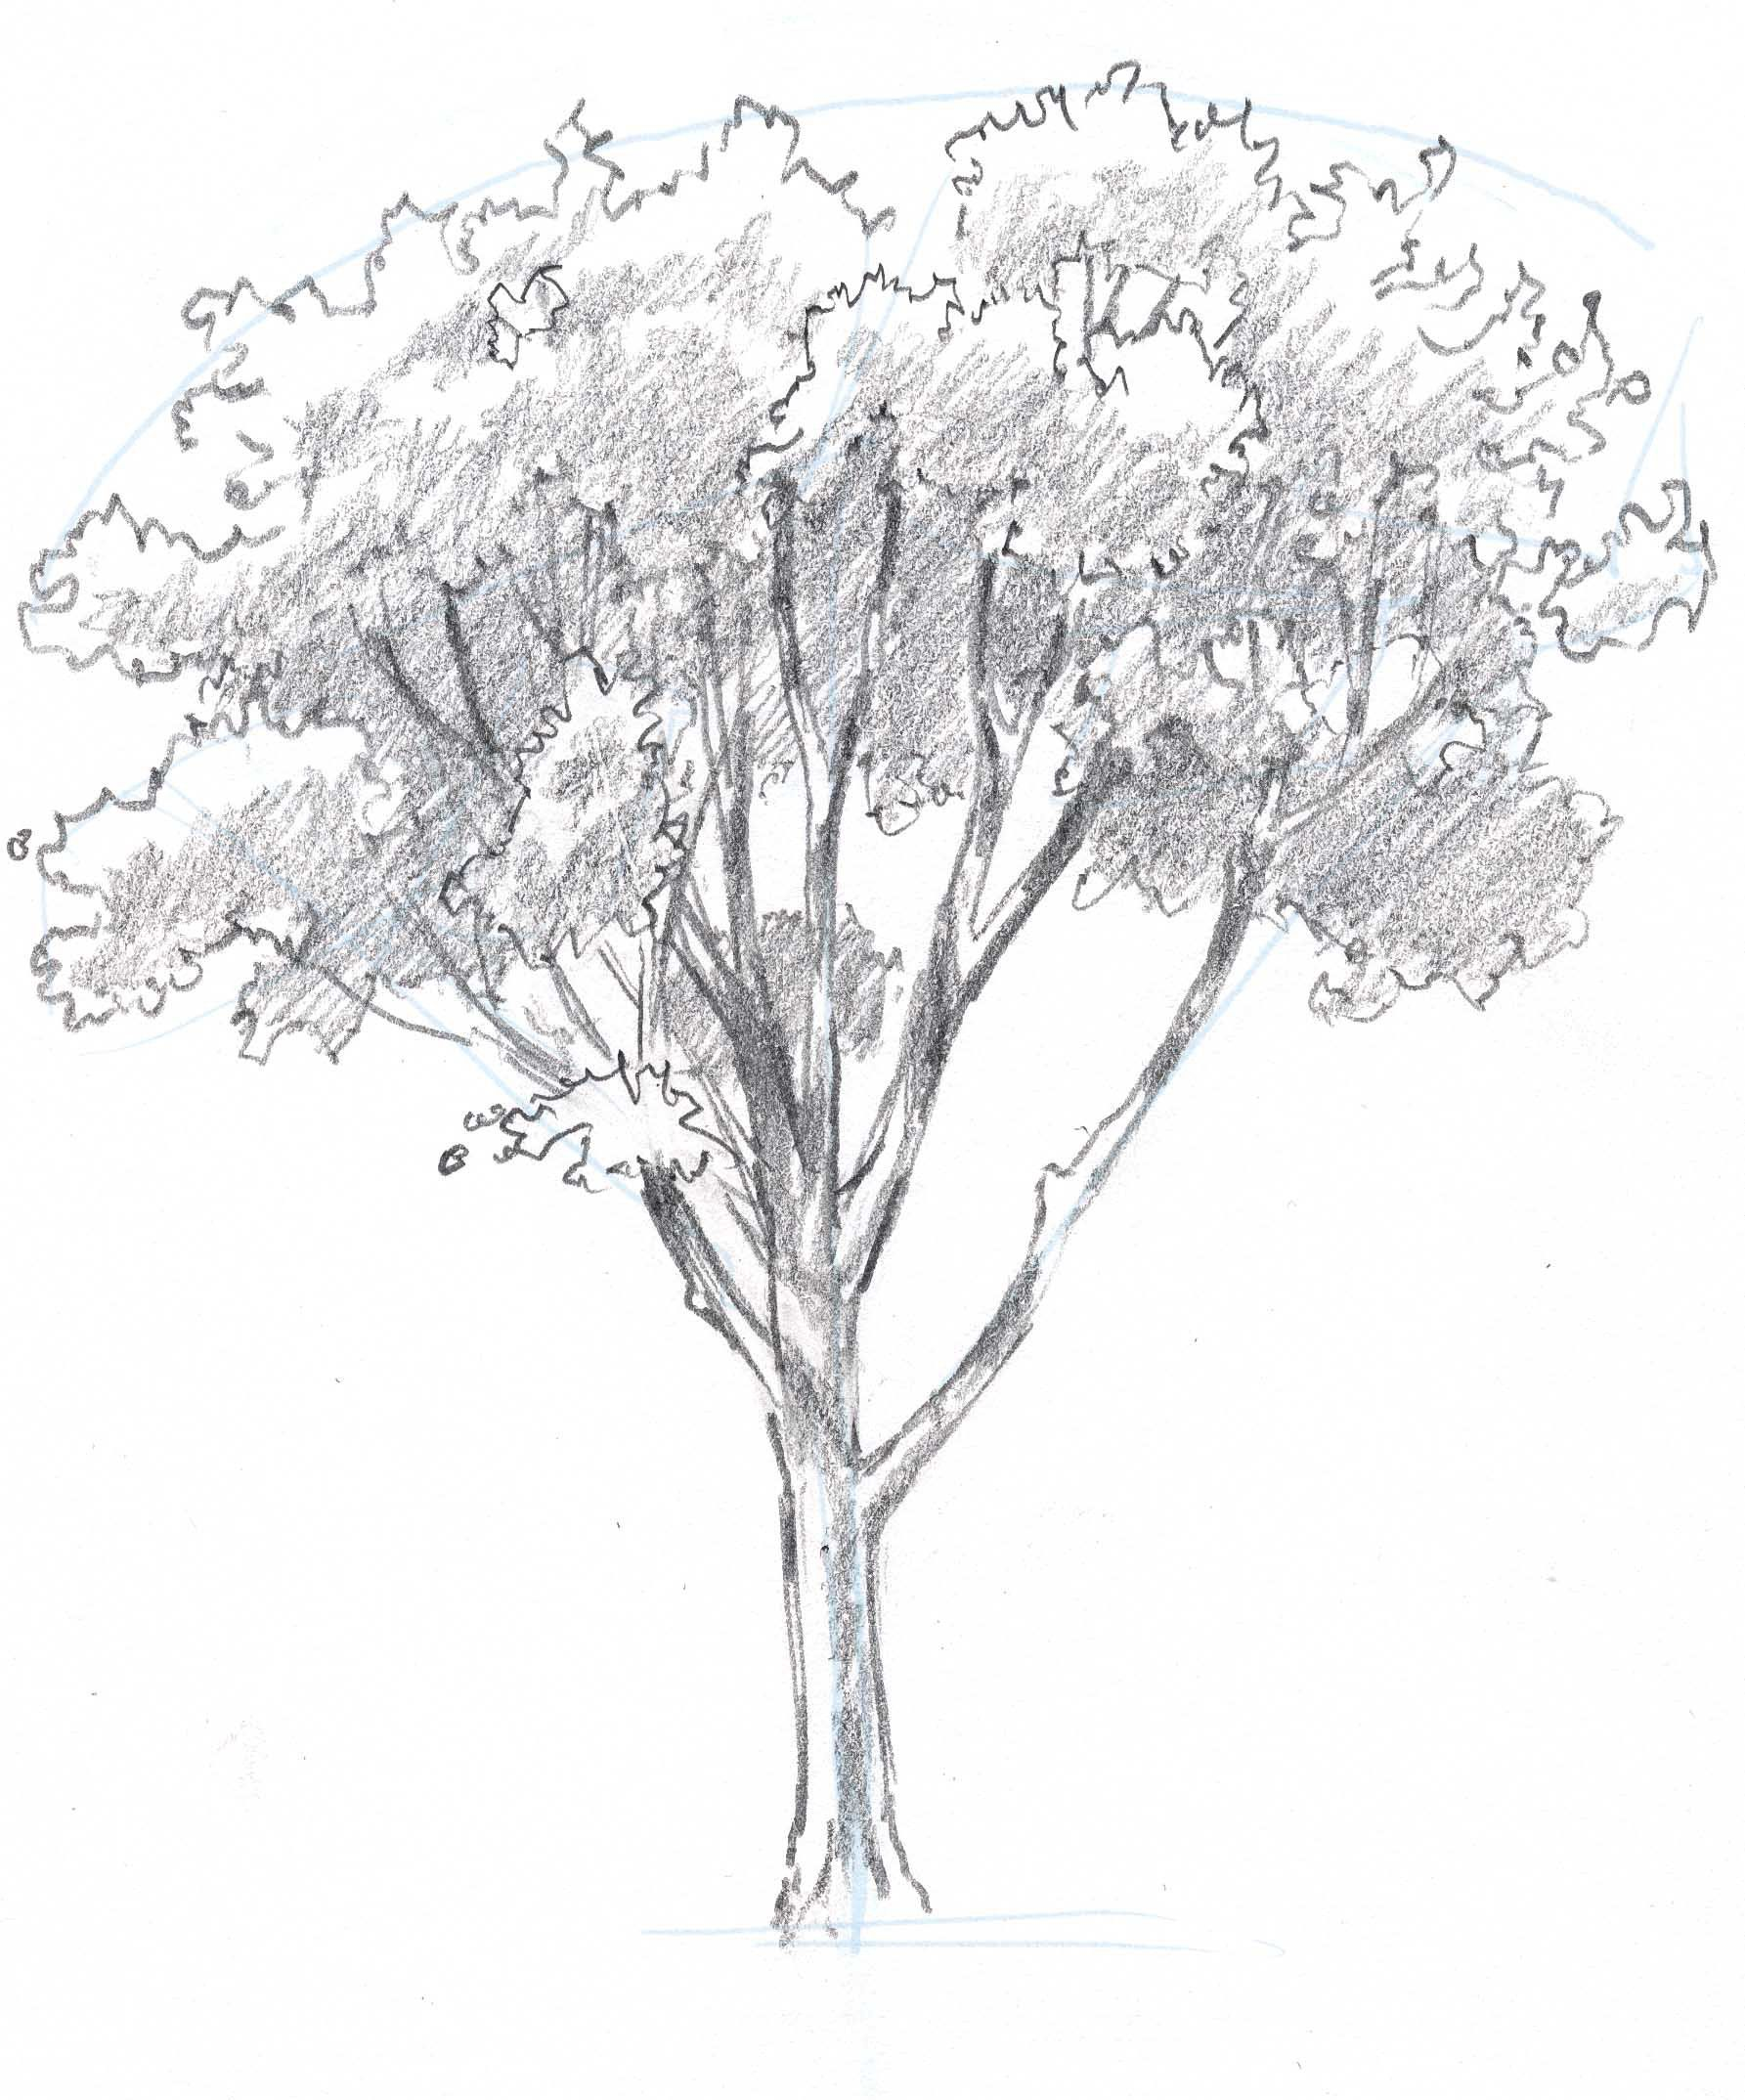 Superbe Learn How To Draw Trees In This Simple Step By Step Demonstration Of The  Process Of